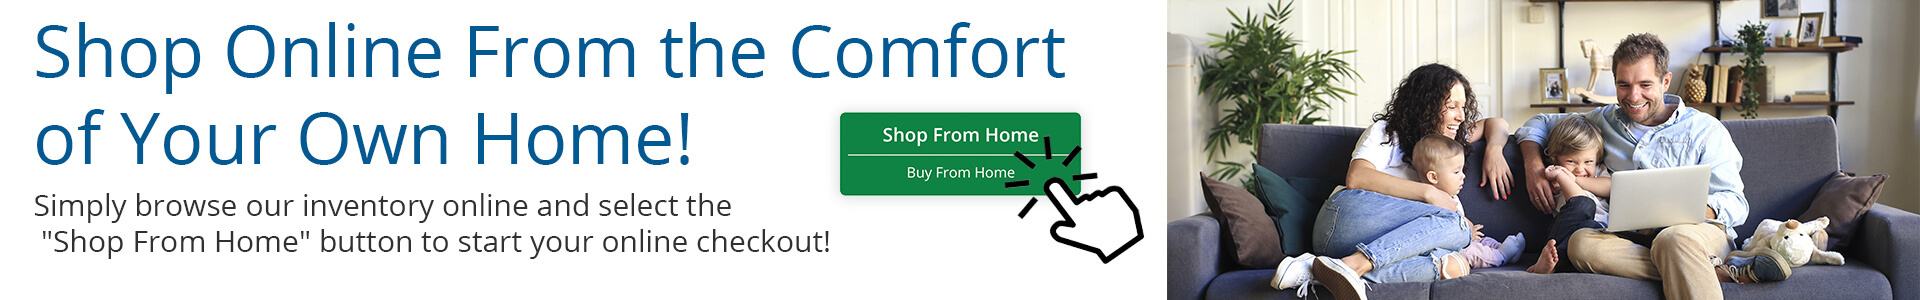 Shop Online From the Comfort of Your Own Home!